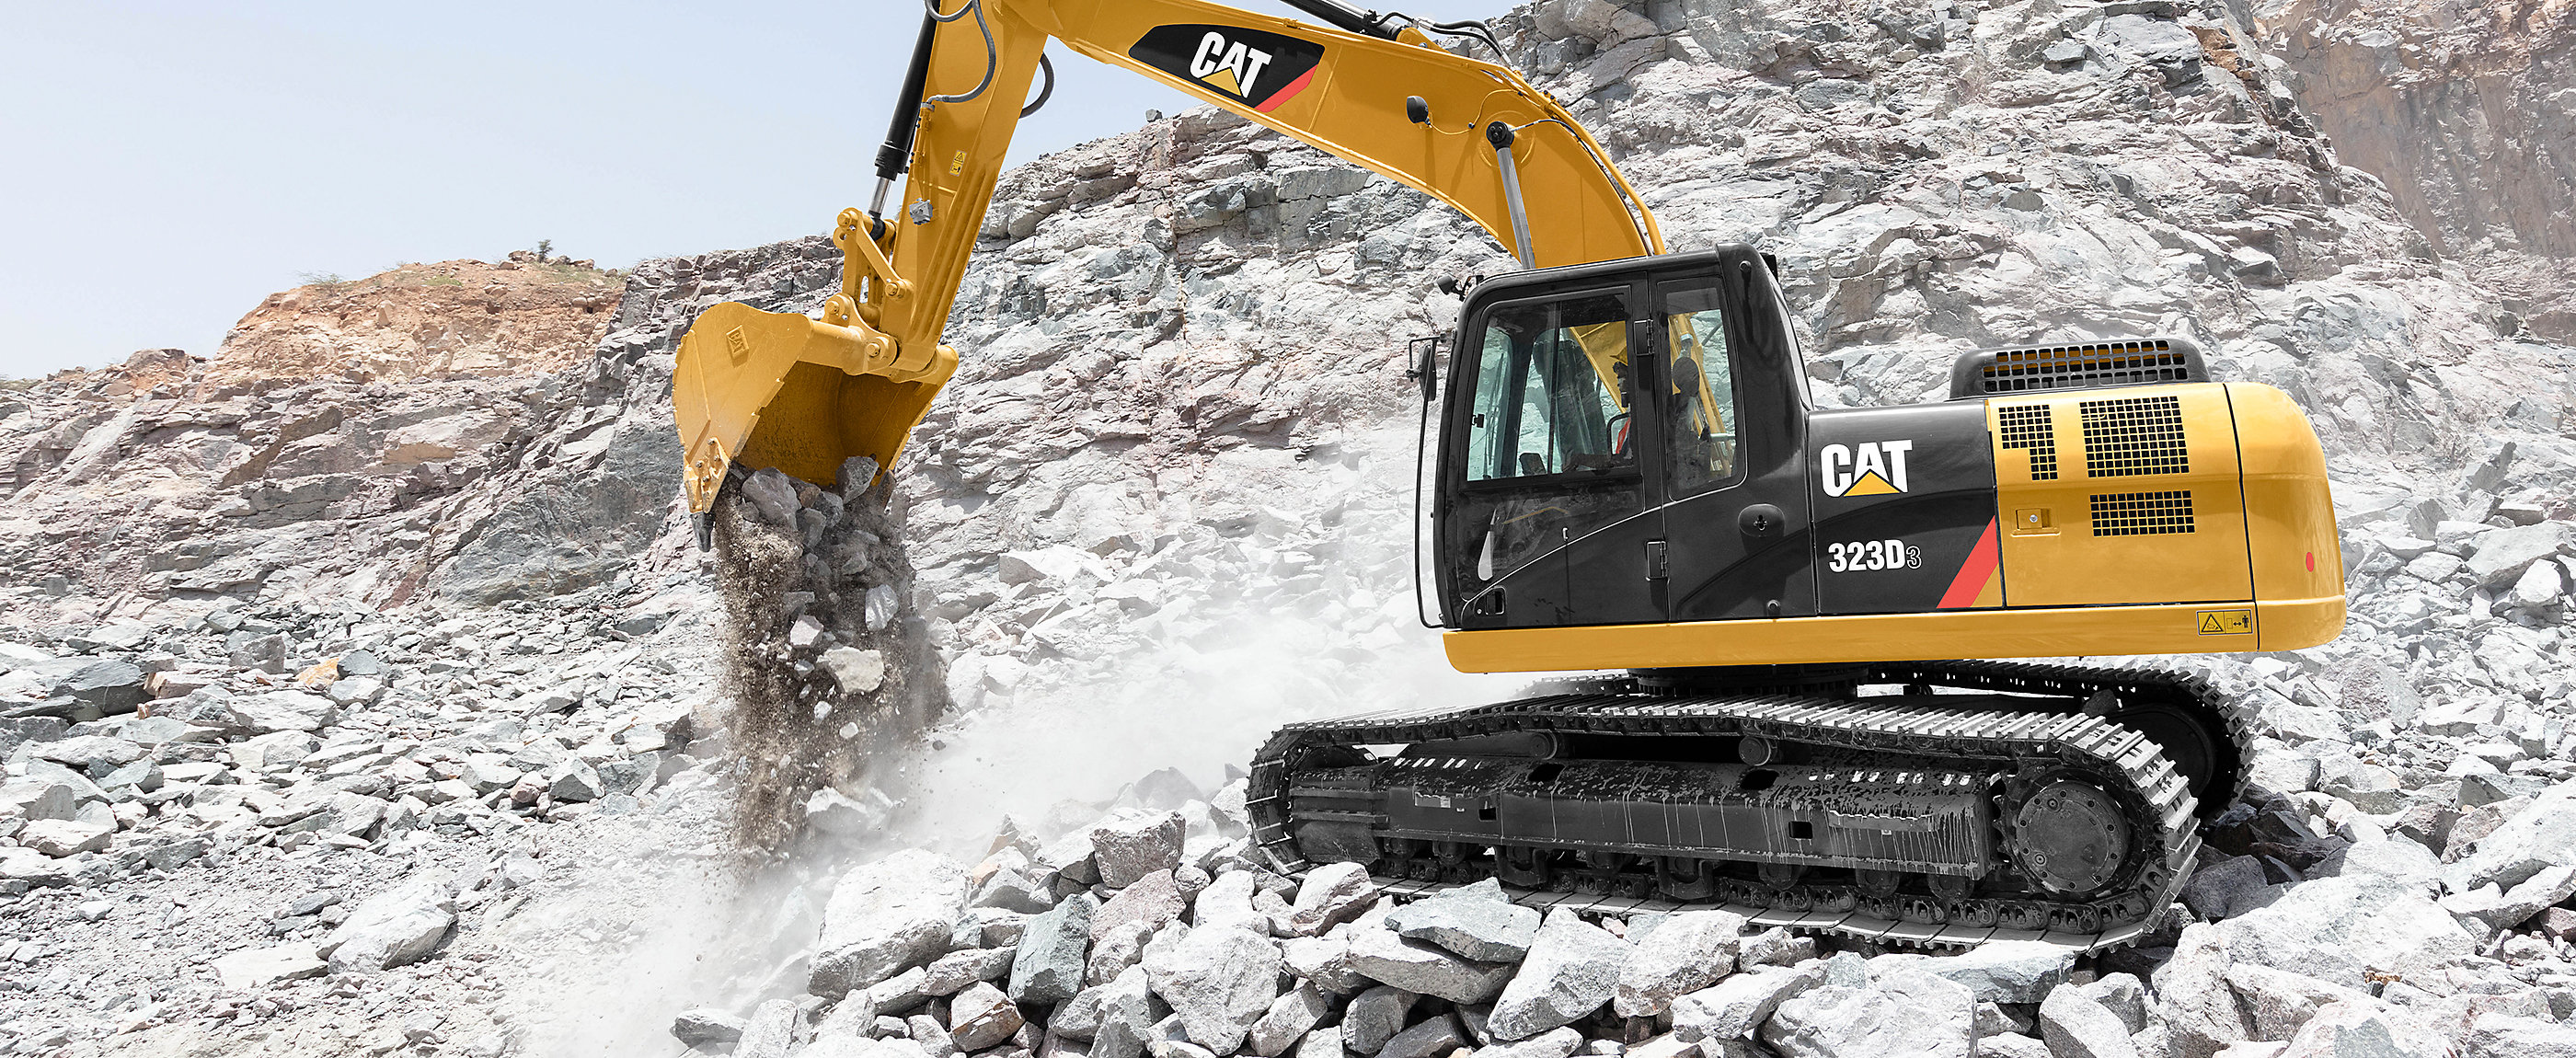 Cat 320D3 and 323D3 excavators are essential equipment for many construction contractors in India.